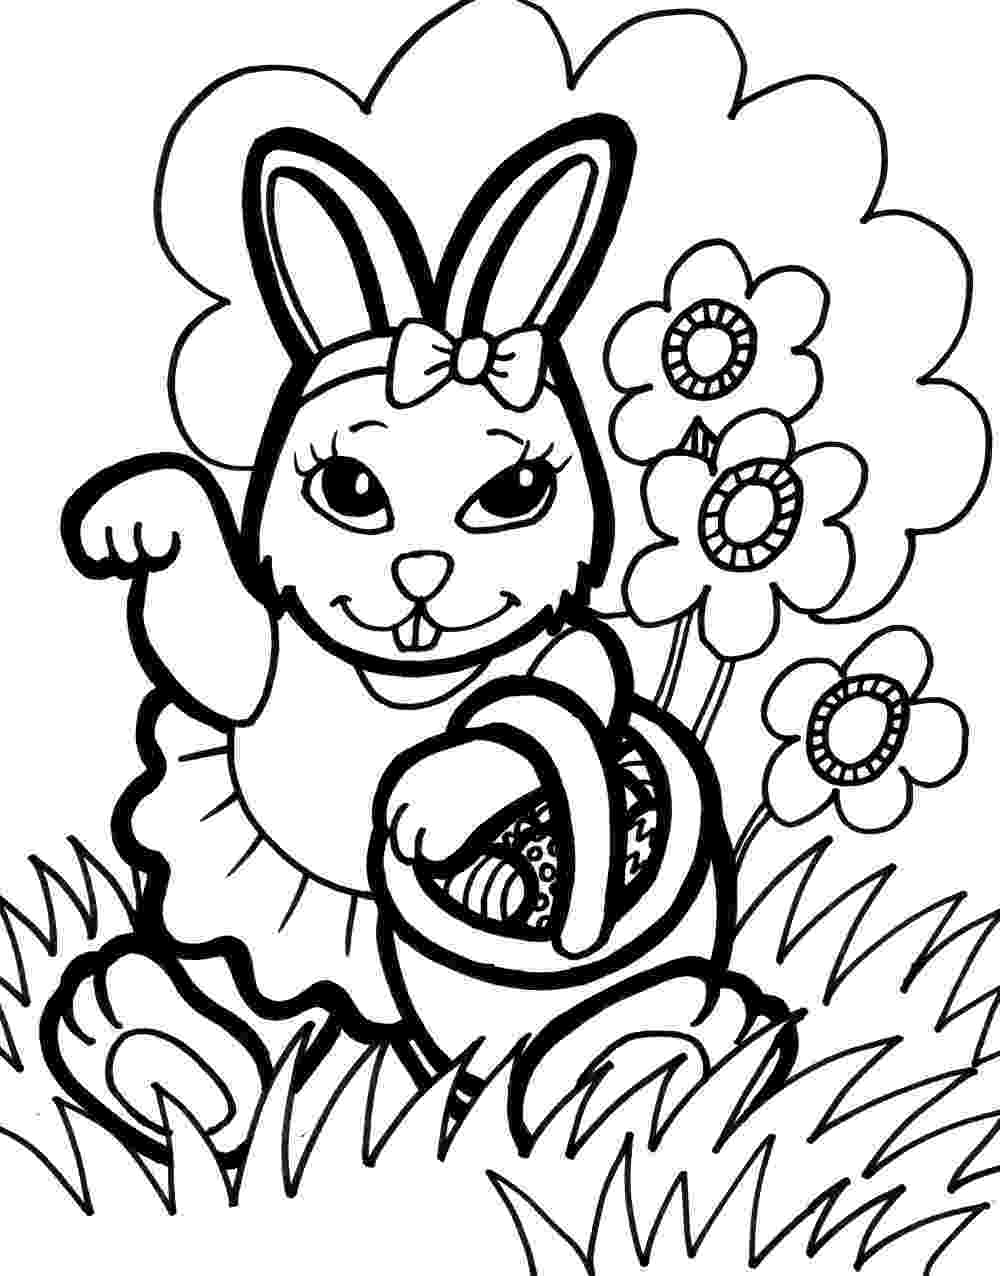 bunny coloring page bunny rabbit coloring pages to download and print for free page bunny coloring